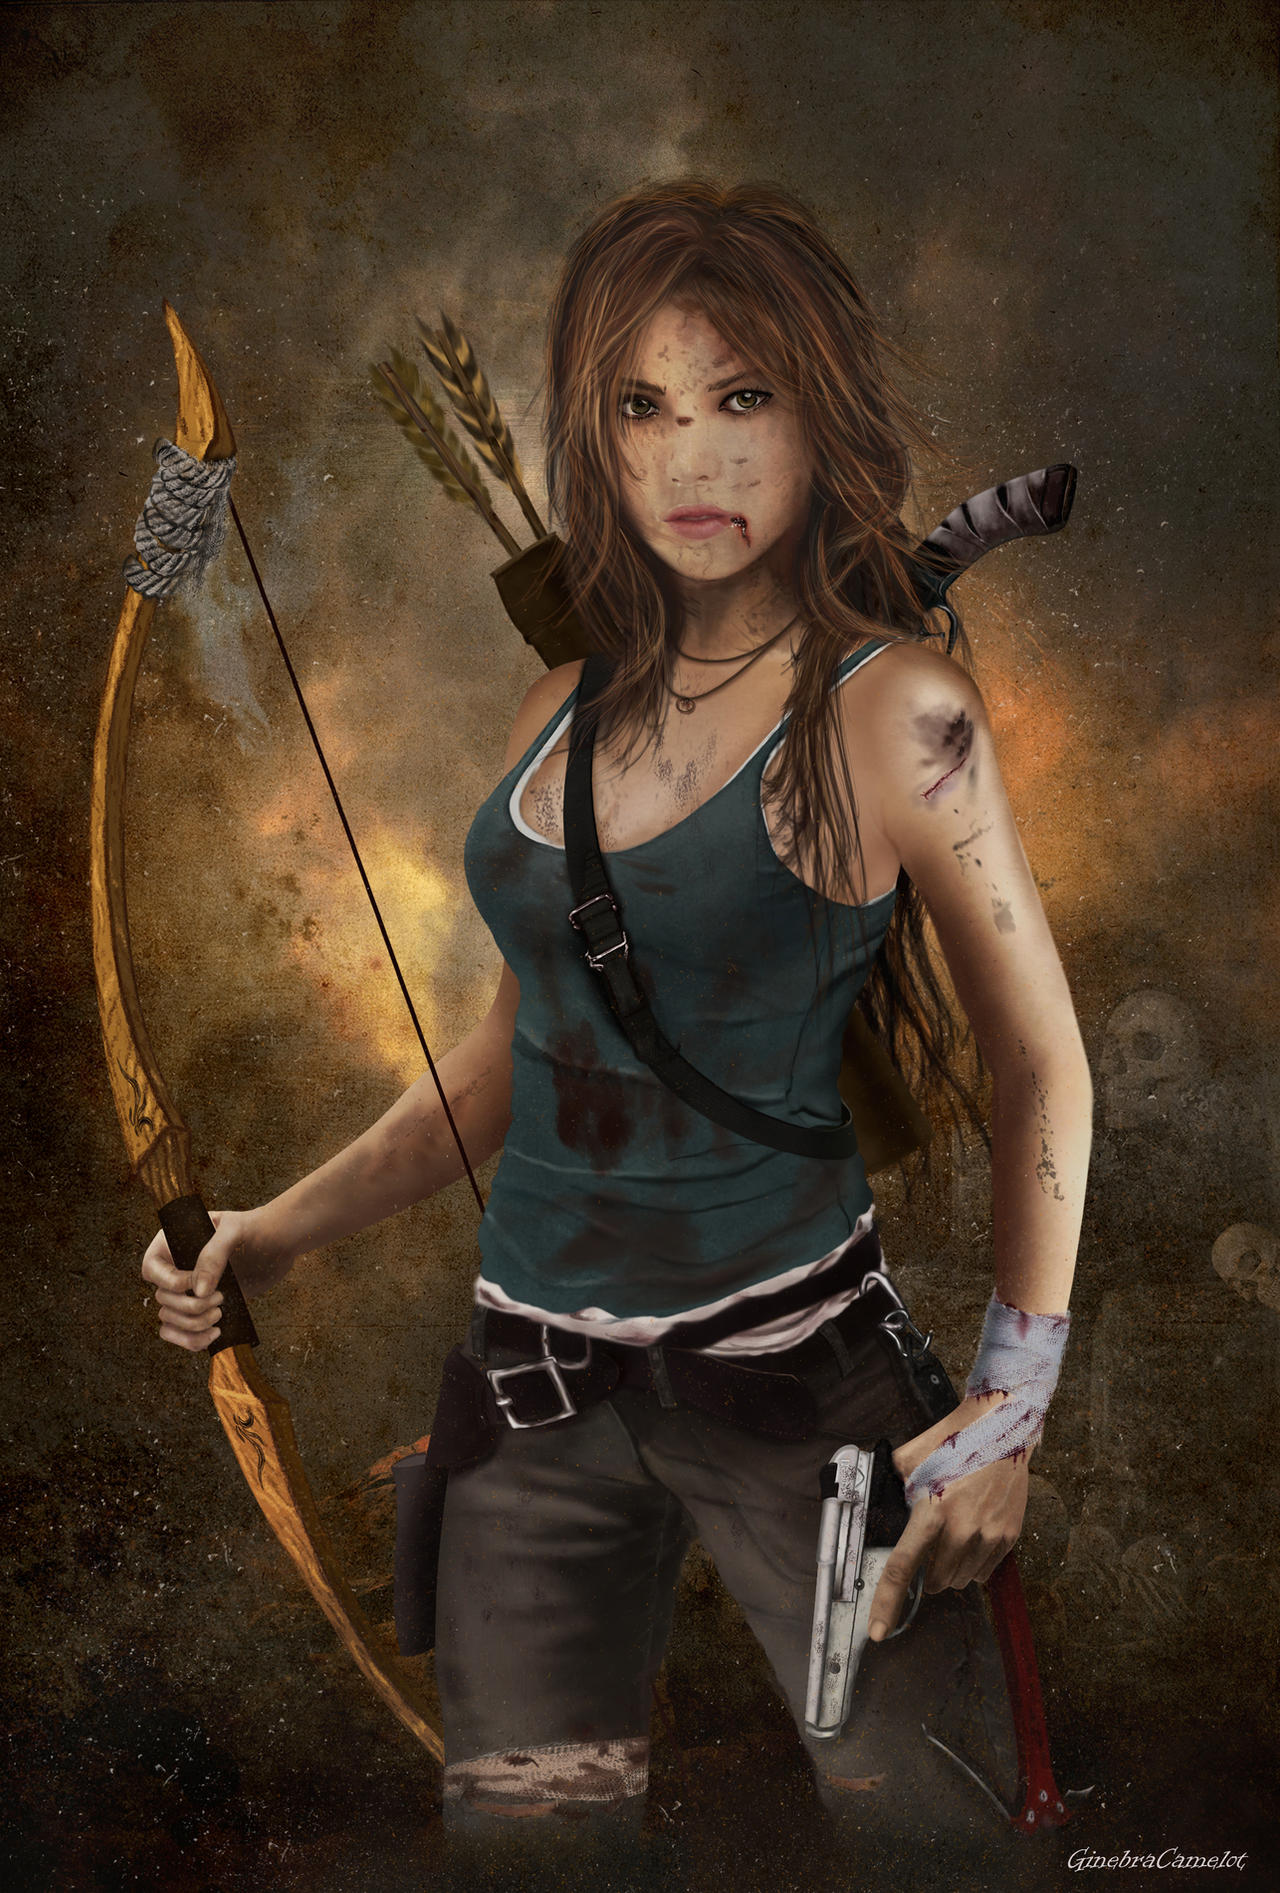 Lara Croft - I Will Survive by GinebraCamelot